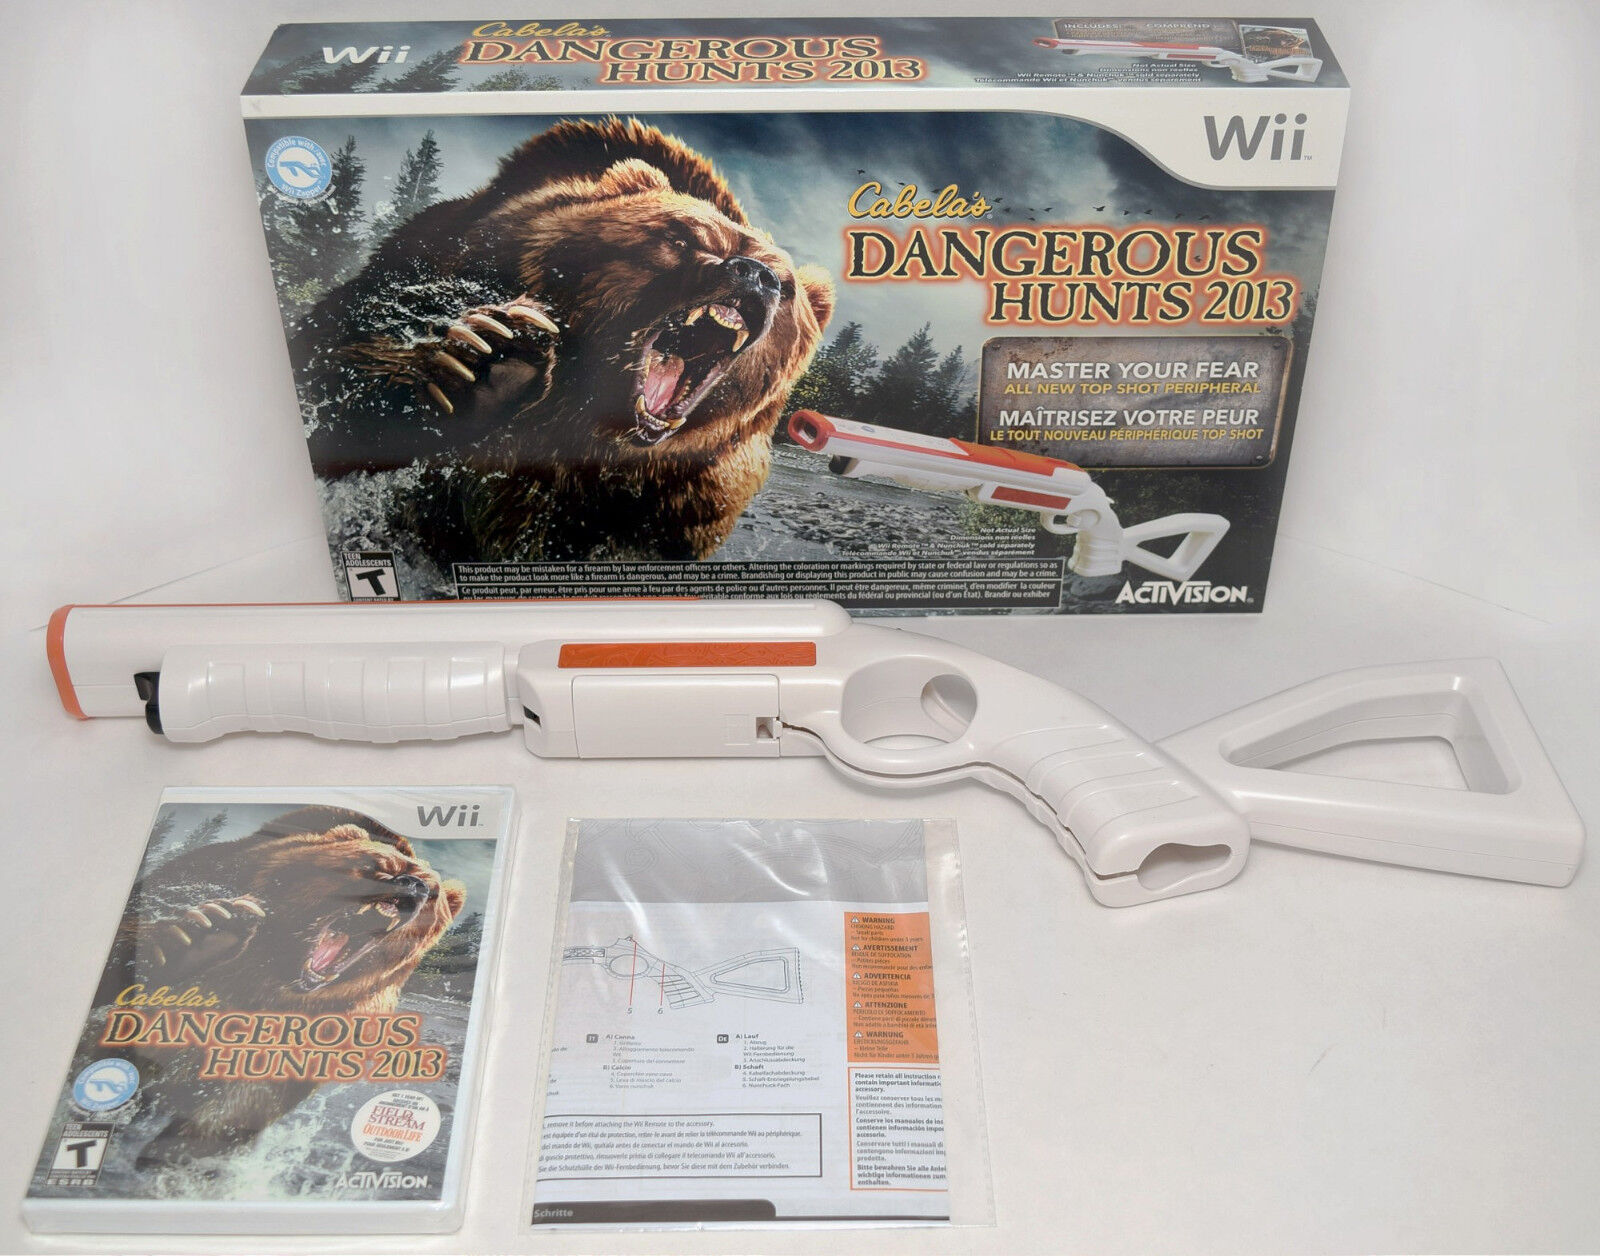 New Wii U Games 2013 : New wii u cabela s dangerous hunts game gun